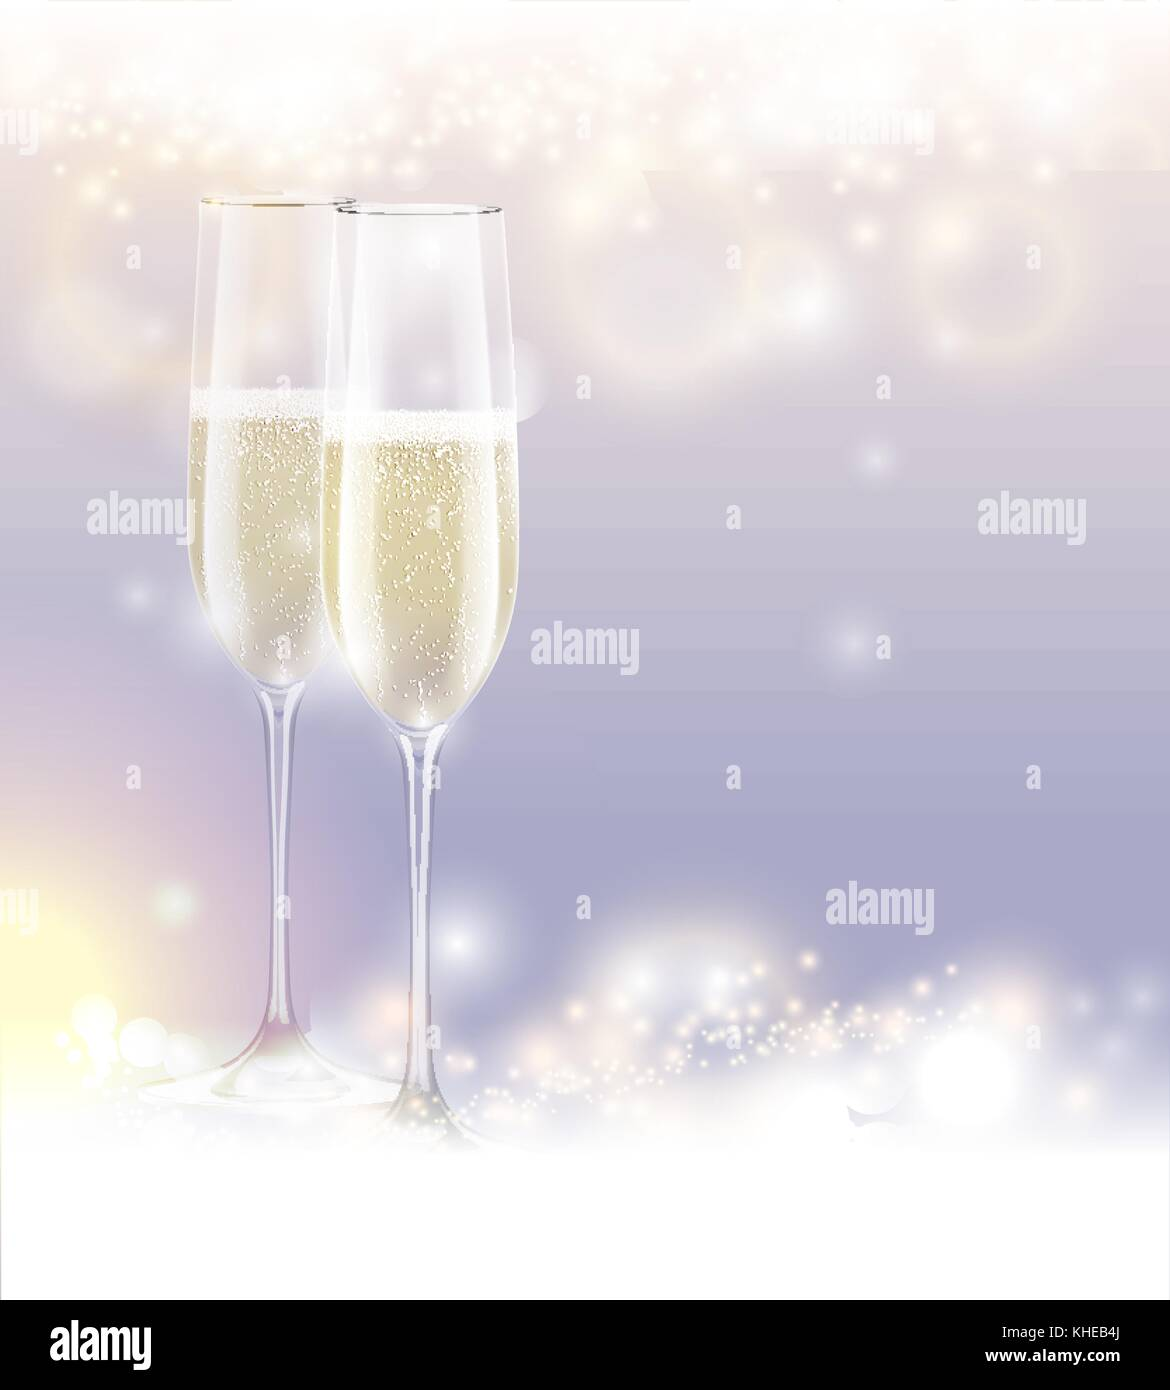 new year eve celebration background two glasses champagne abstract sparkling light magic glitter glow bright festive holiday poster with sparks